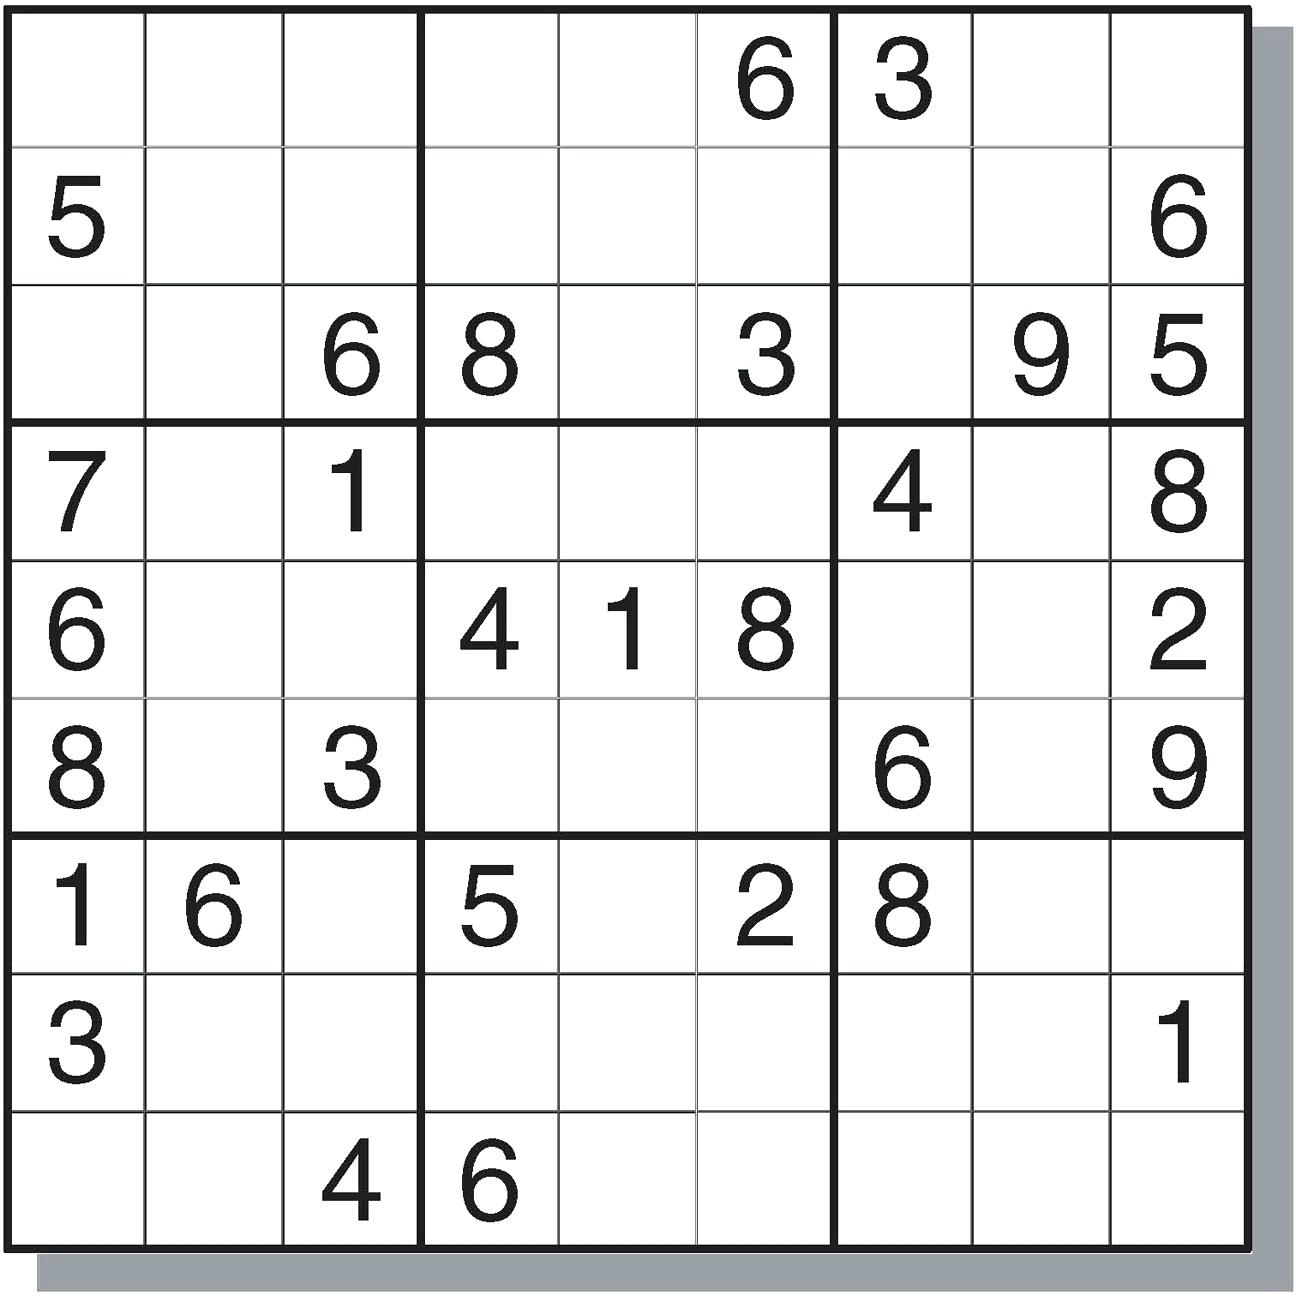 Worksheet : Easy Sudoku Puzzles Printable Flvipymy Screenshoot On - Printable Sudoku Puzzles Easy #1 Answers